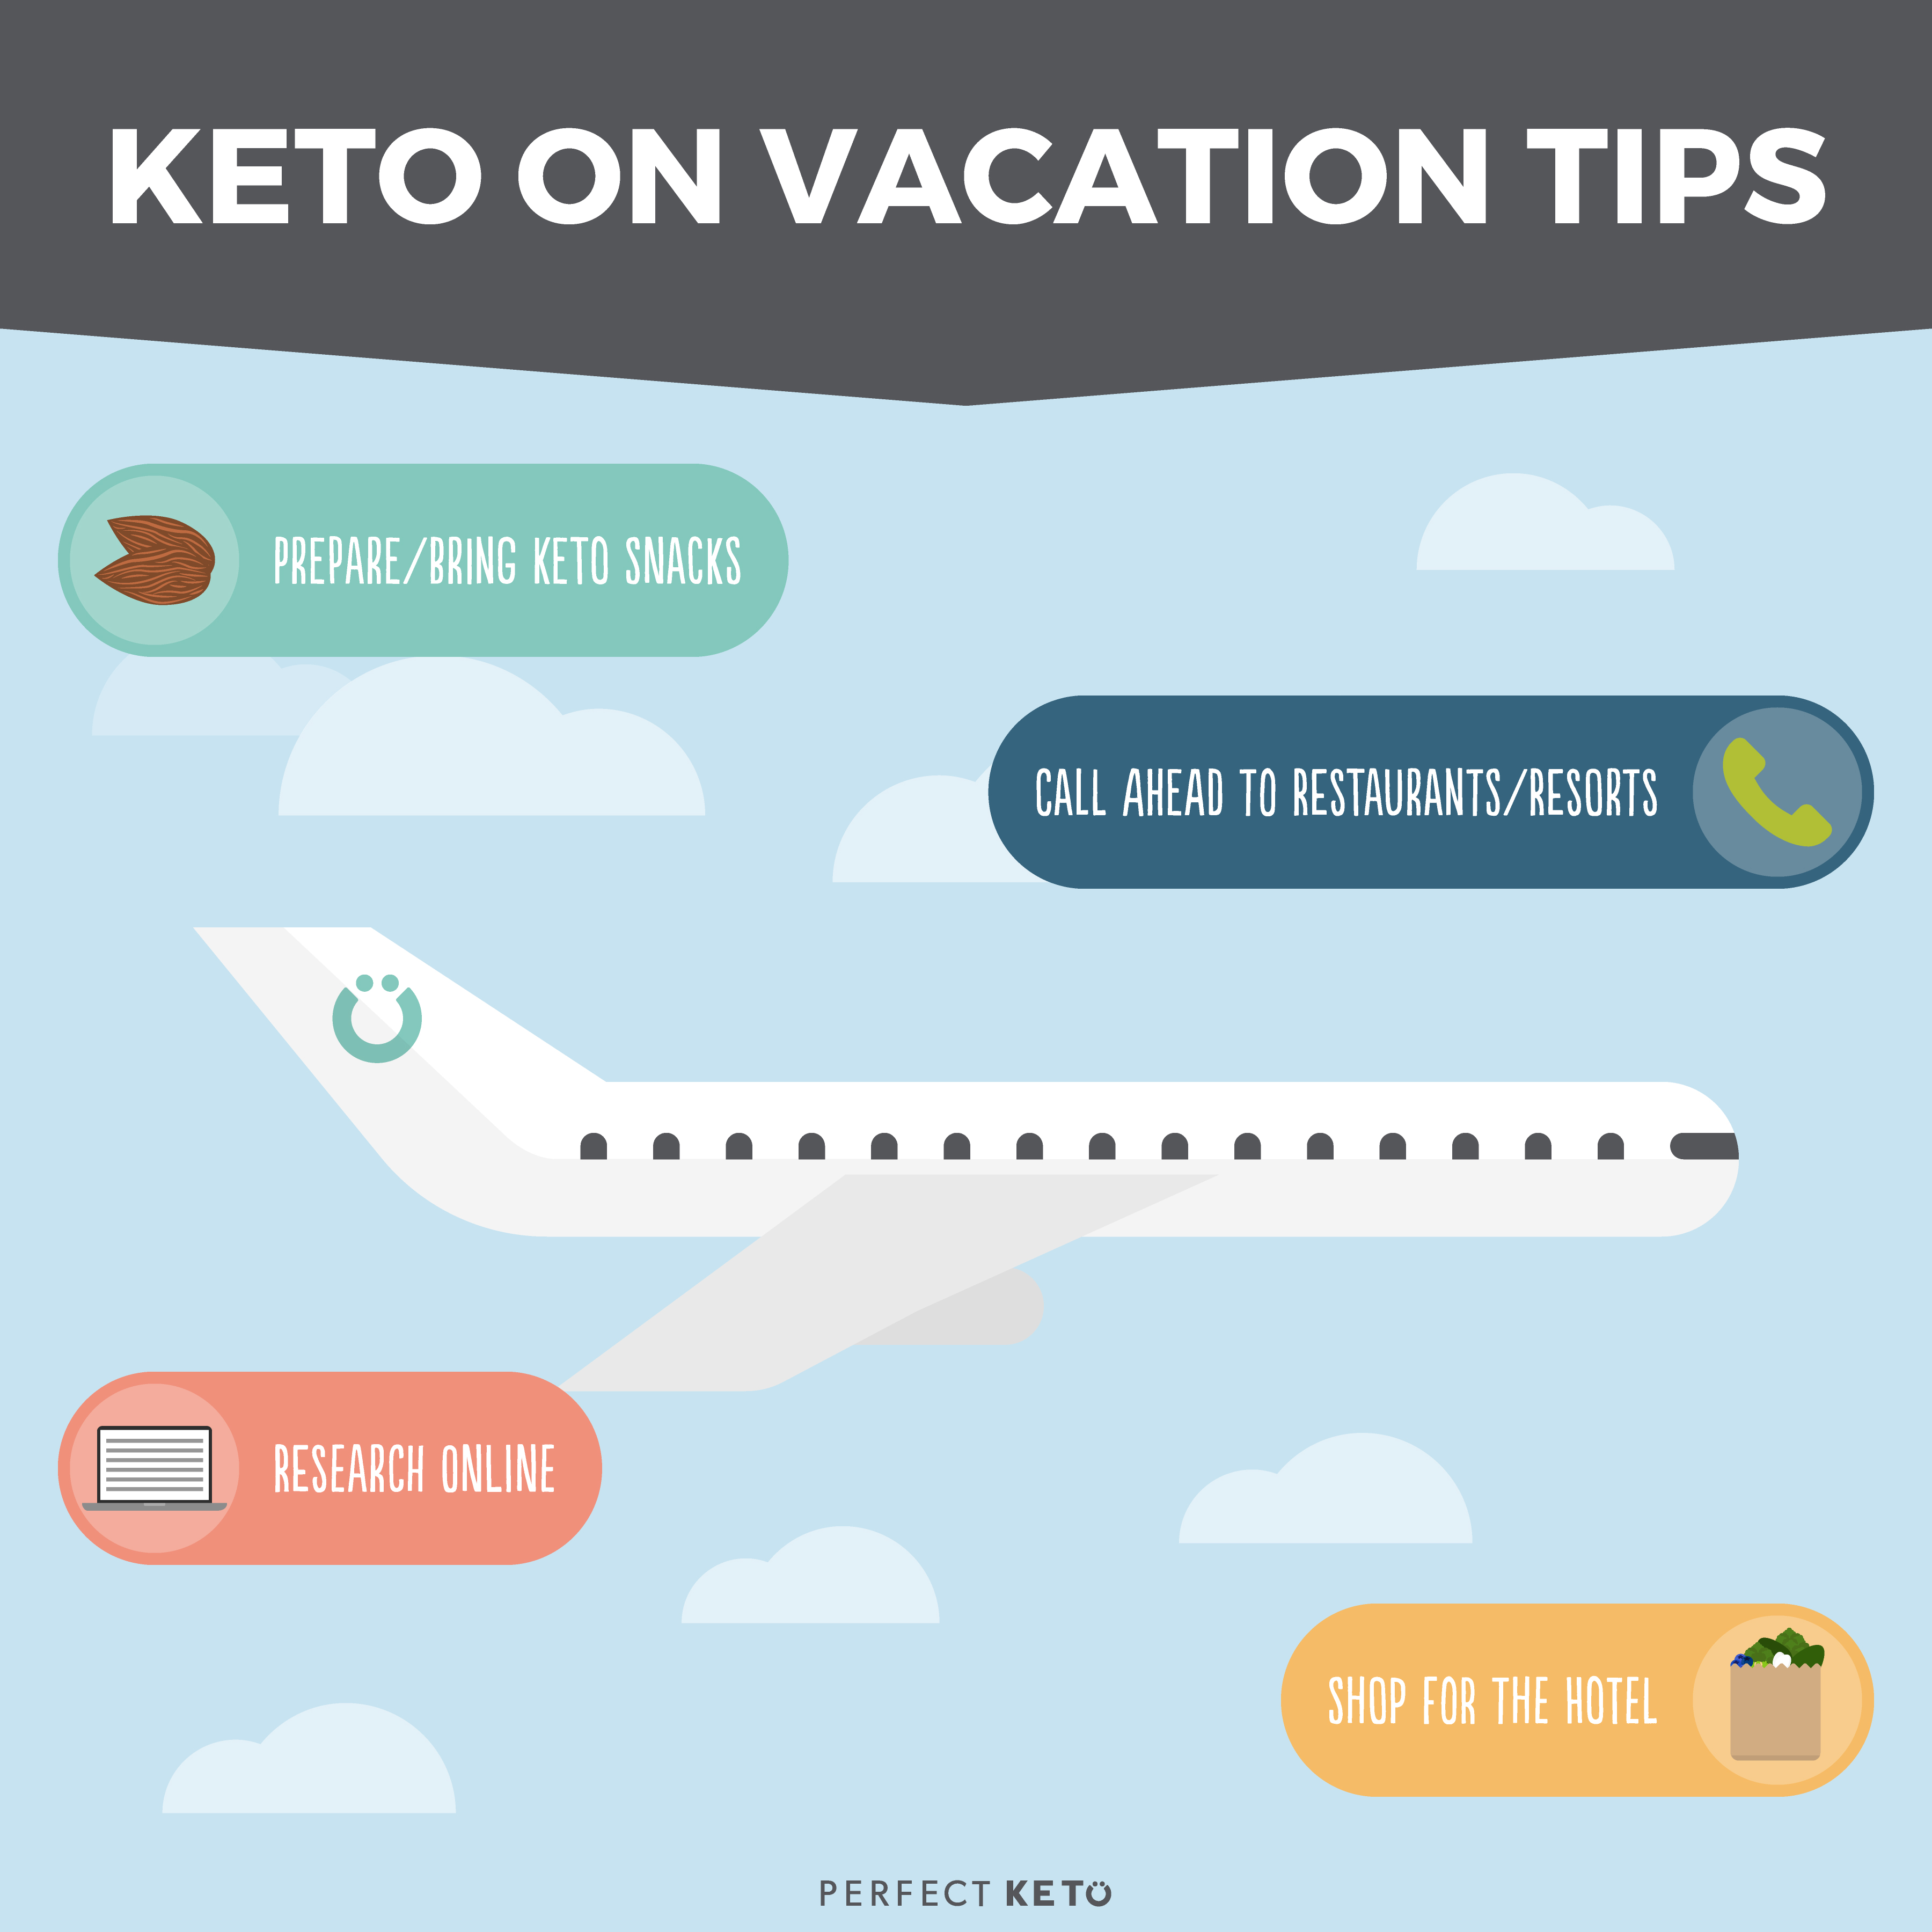 keto-on-vacation-tips.jpg